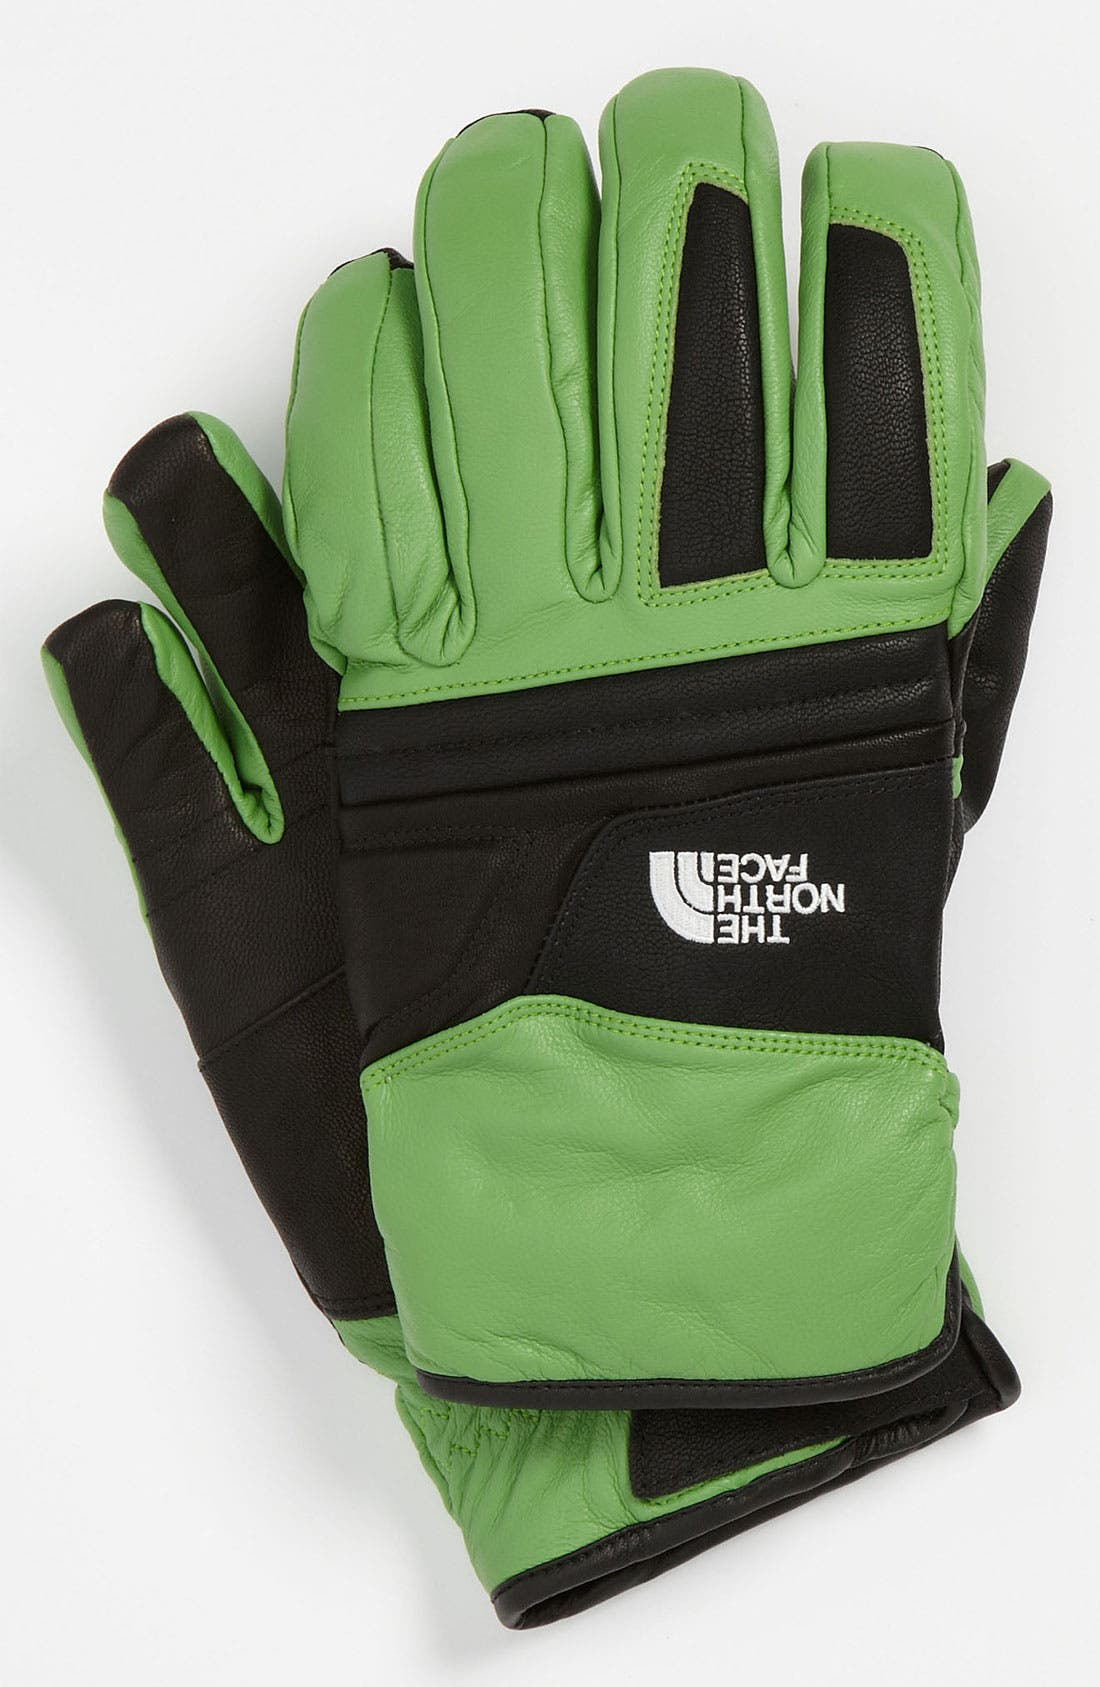 Main Image - The North Face 'Hooligan' Gloves